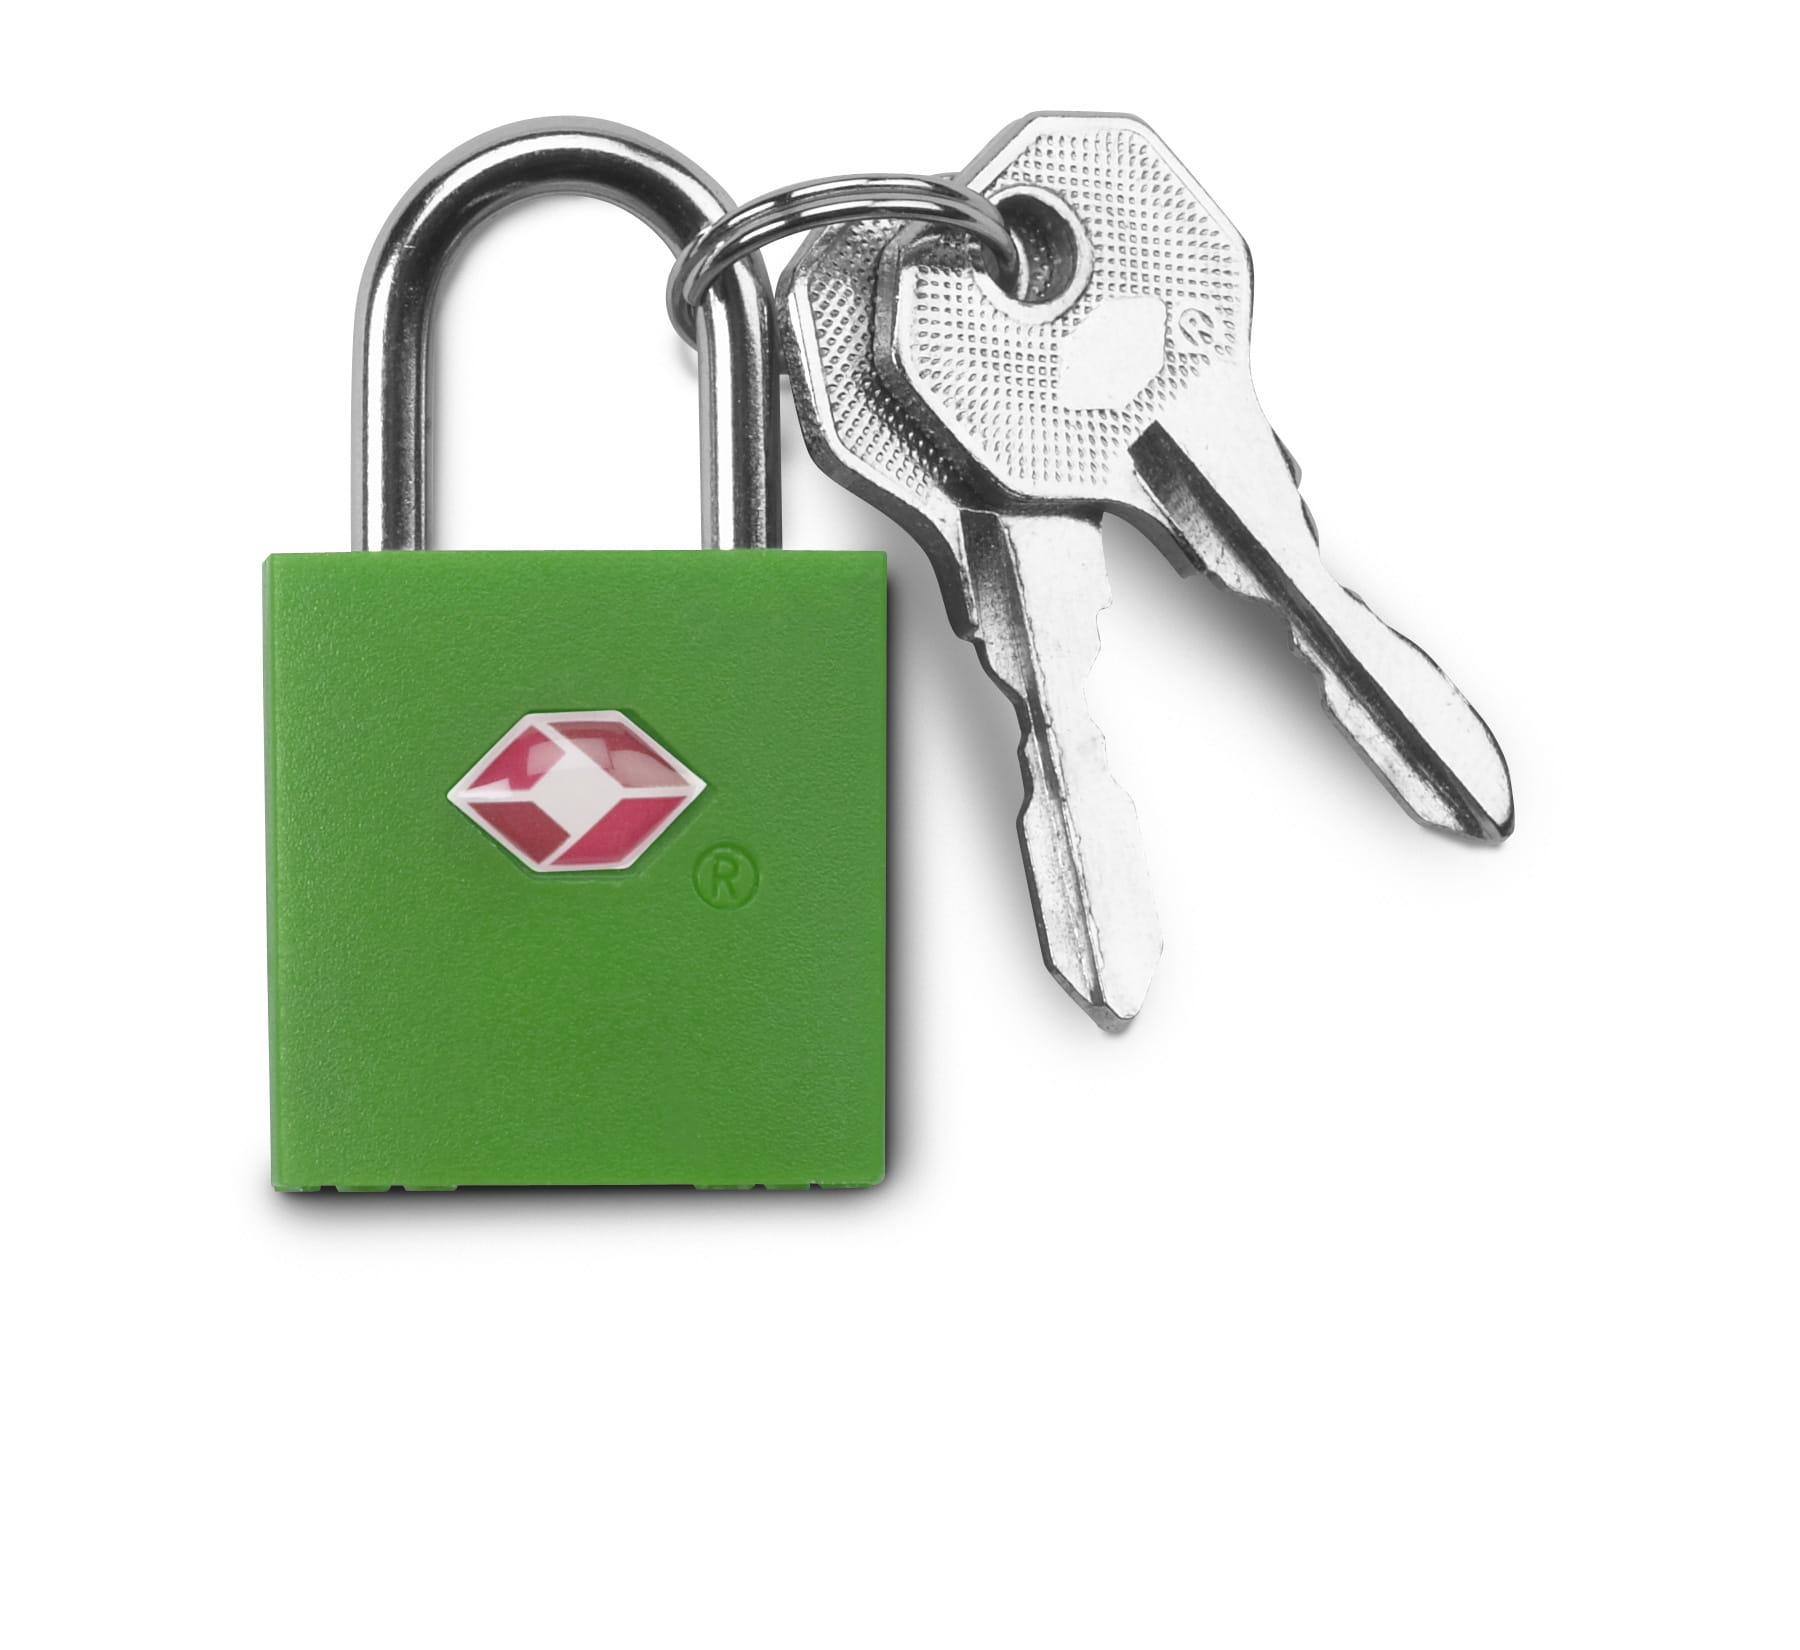 Smooth Trip 174 Tsa Accepted Luggage Key Lock Neon Green